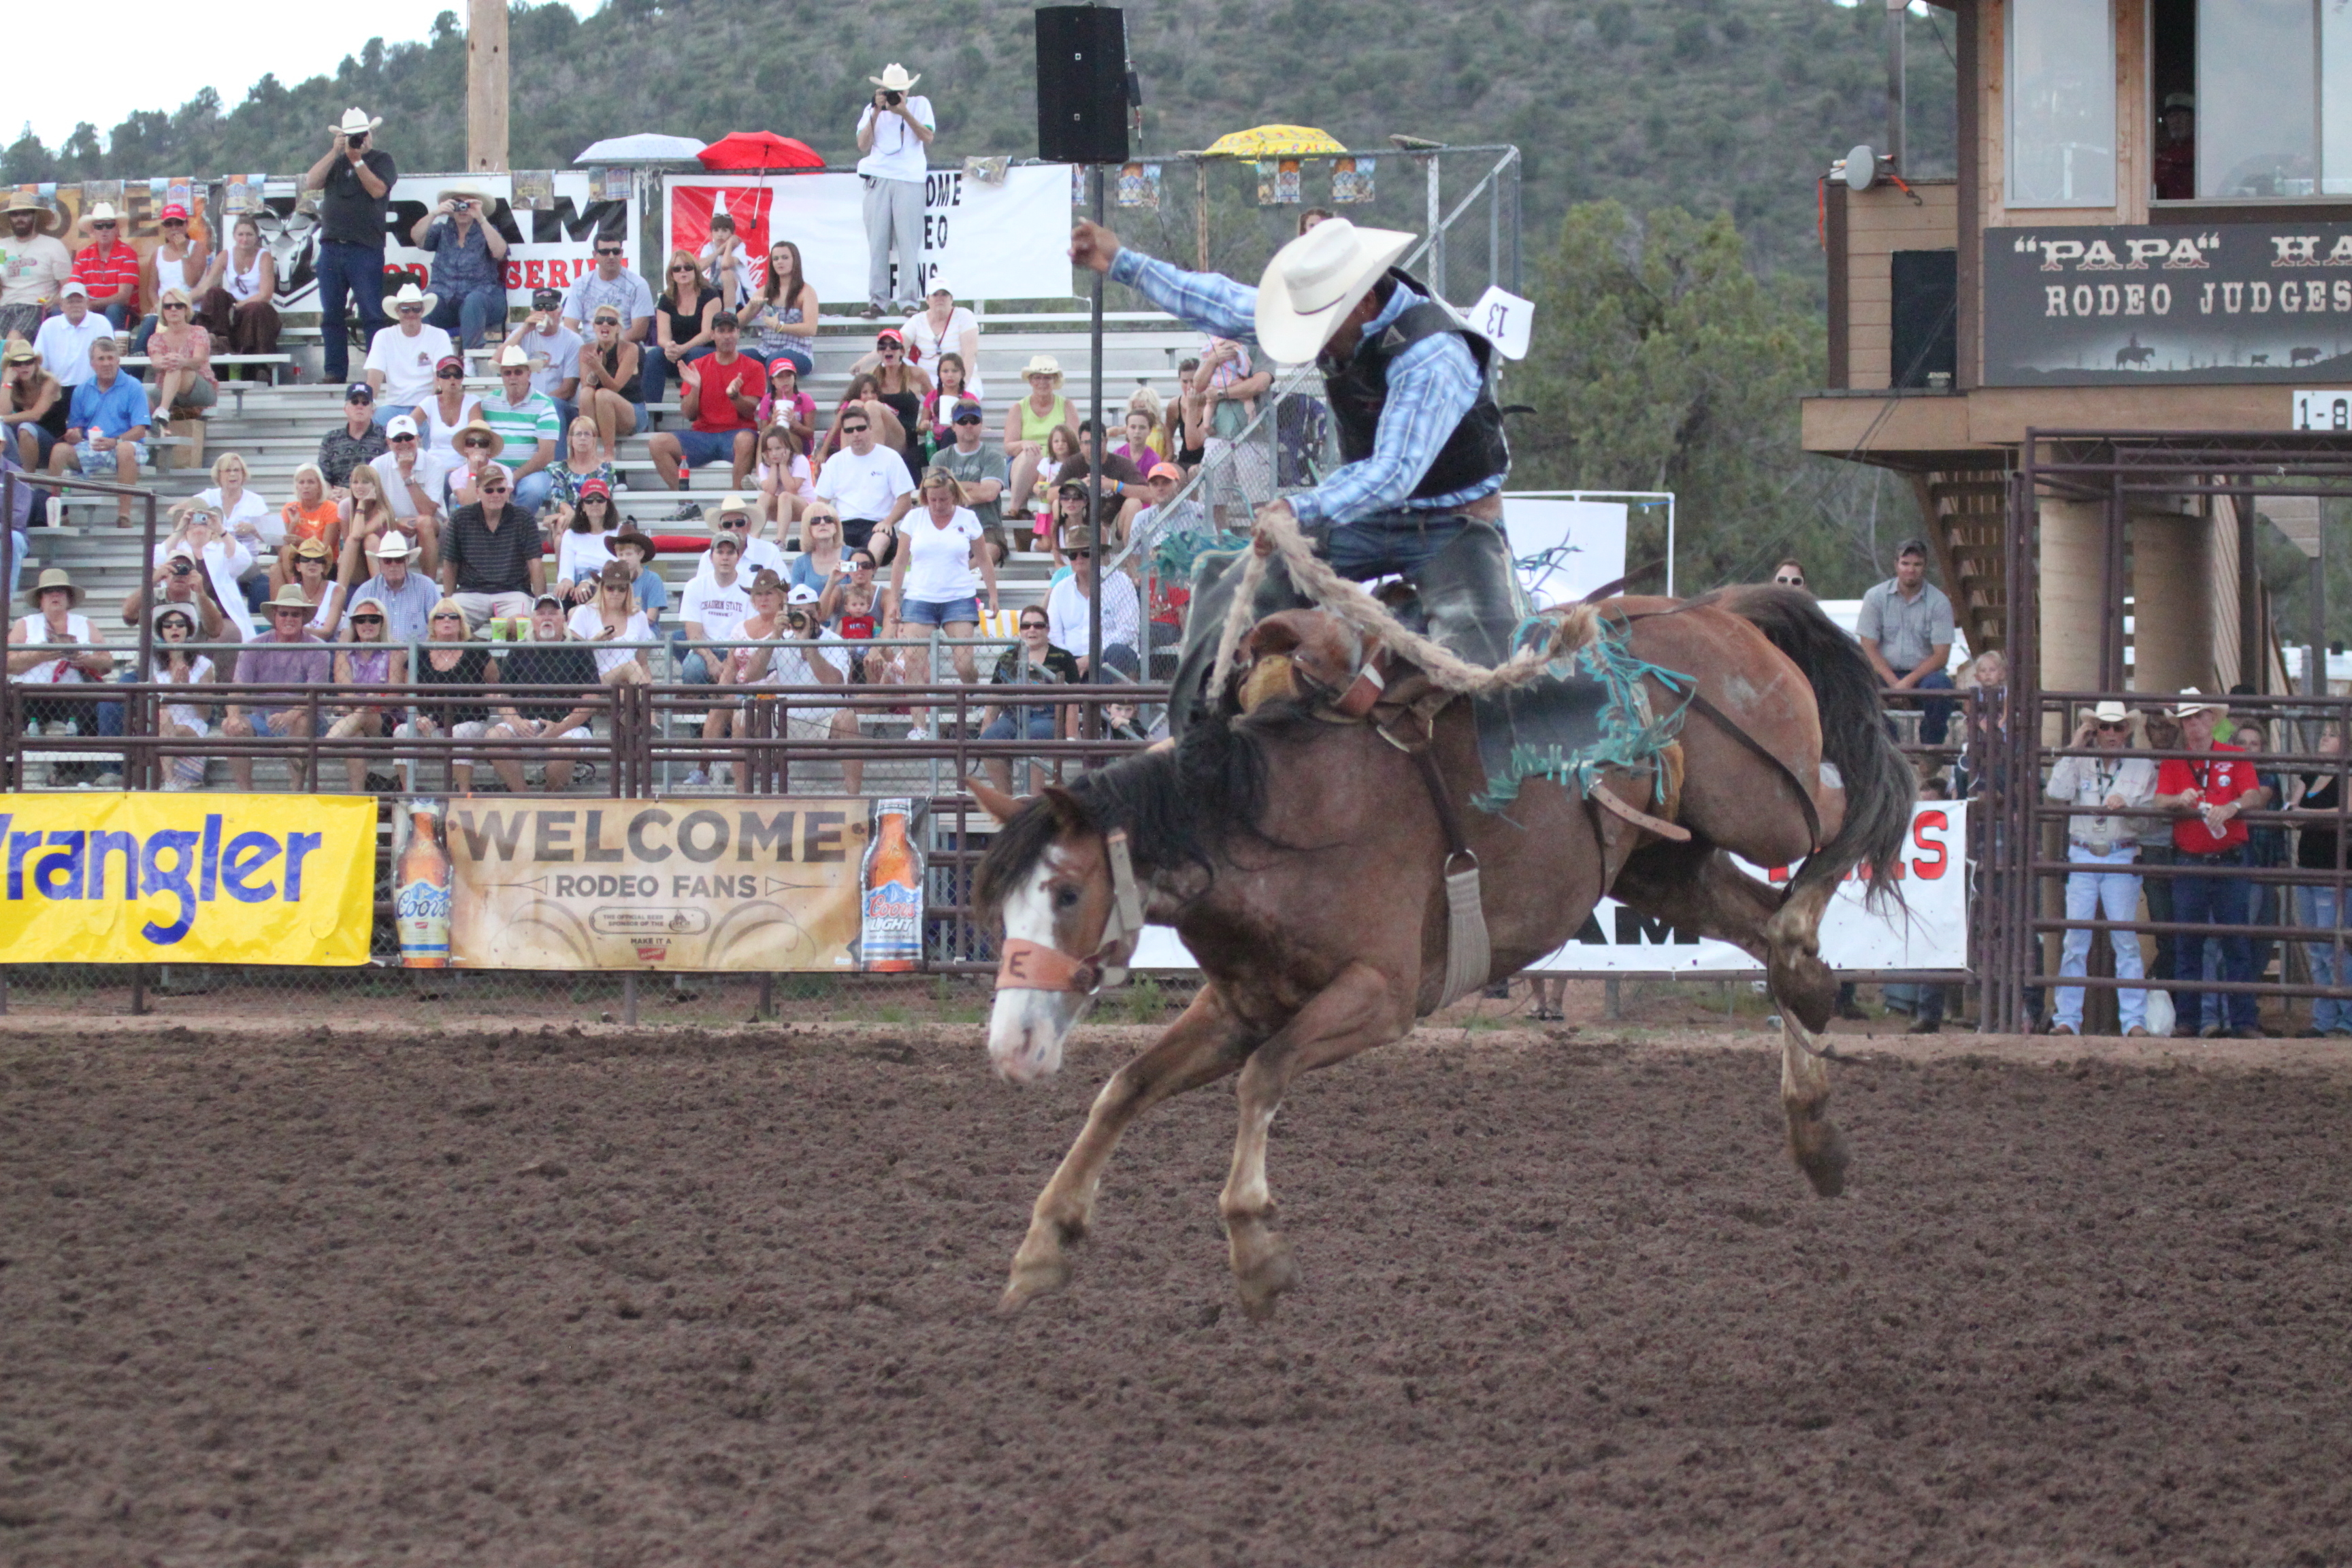 Payson_Rodeo_20025.JPG